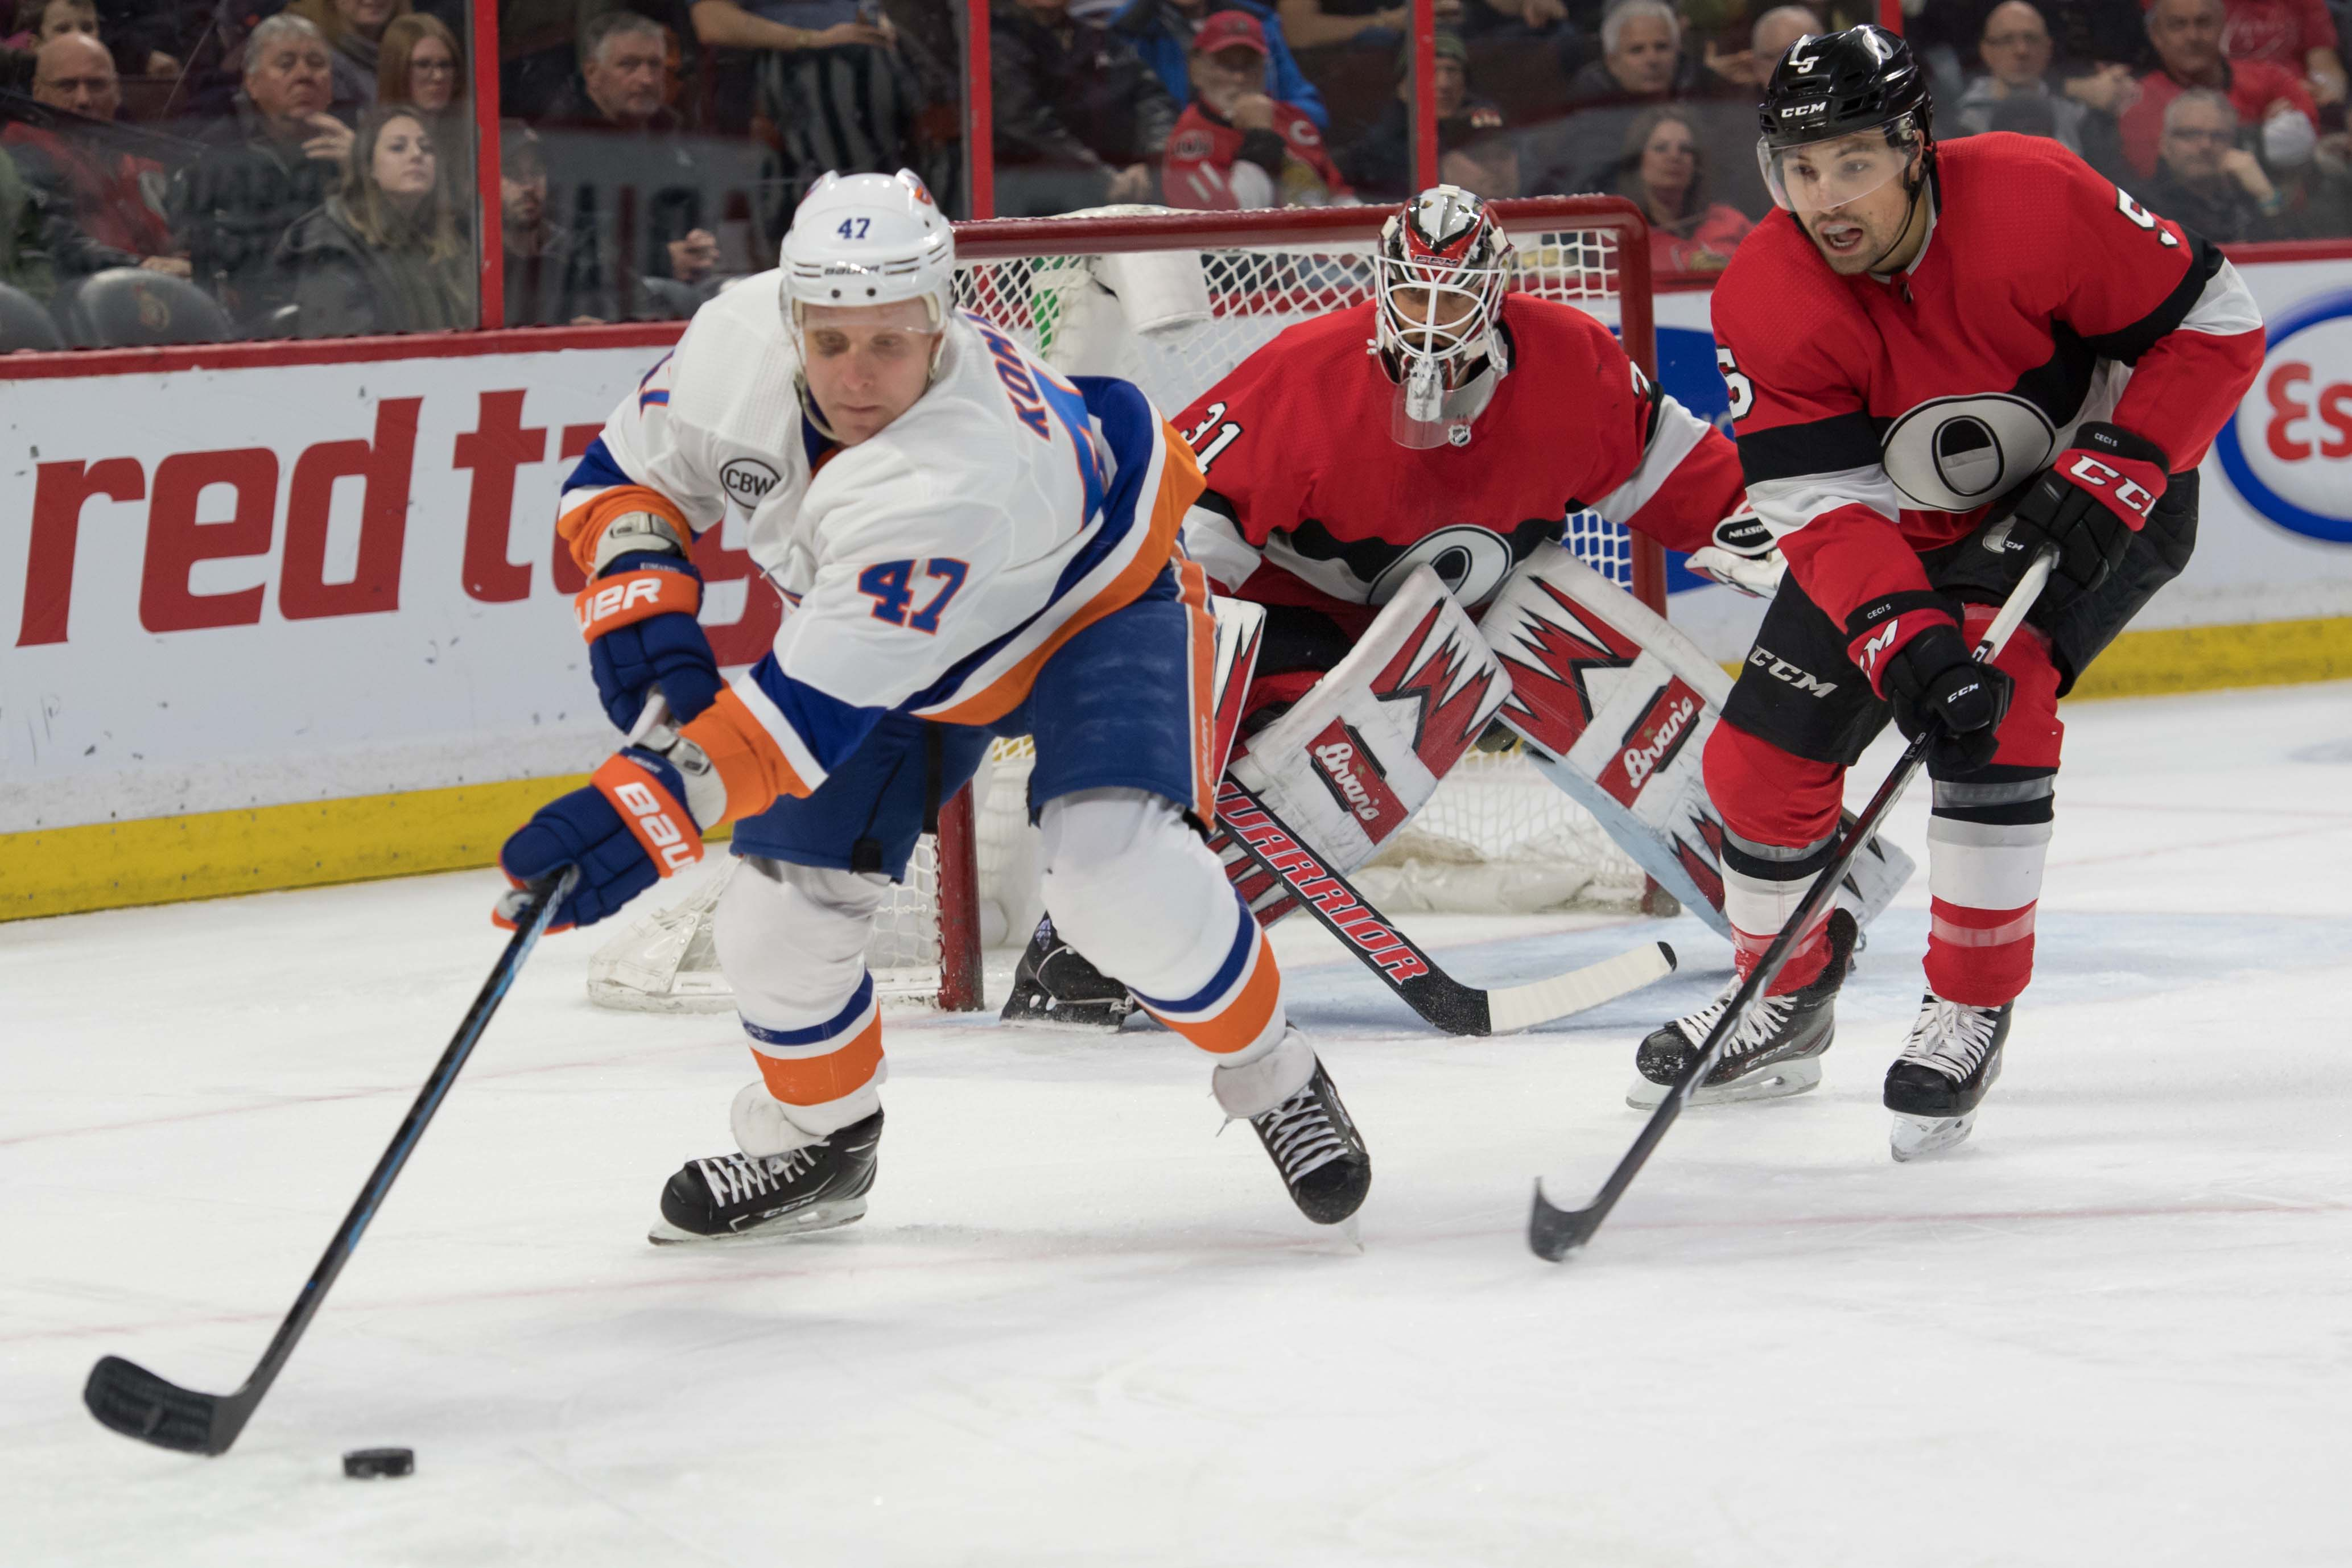 Mar 7, 2019; Ottawa, Ontario, CAN; New York Islanders right wing Leo Komarov (47) skates with the puck in front of Ottawa Senators defenseman Cody Ceci (5) in the first period at the Canadian Tire Centre. Mandatory Credit: Marc DesRosiers-USA TODAY Sports